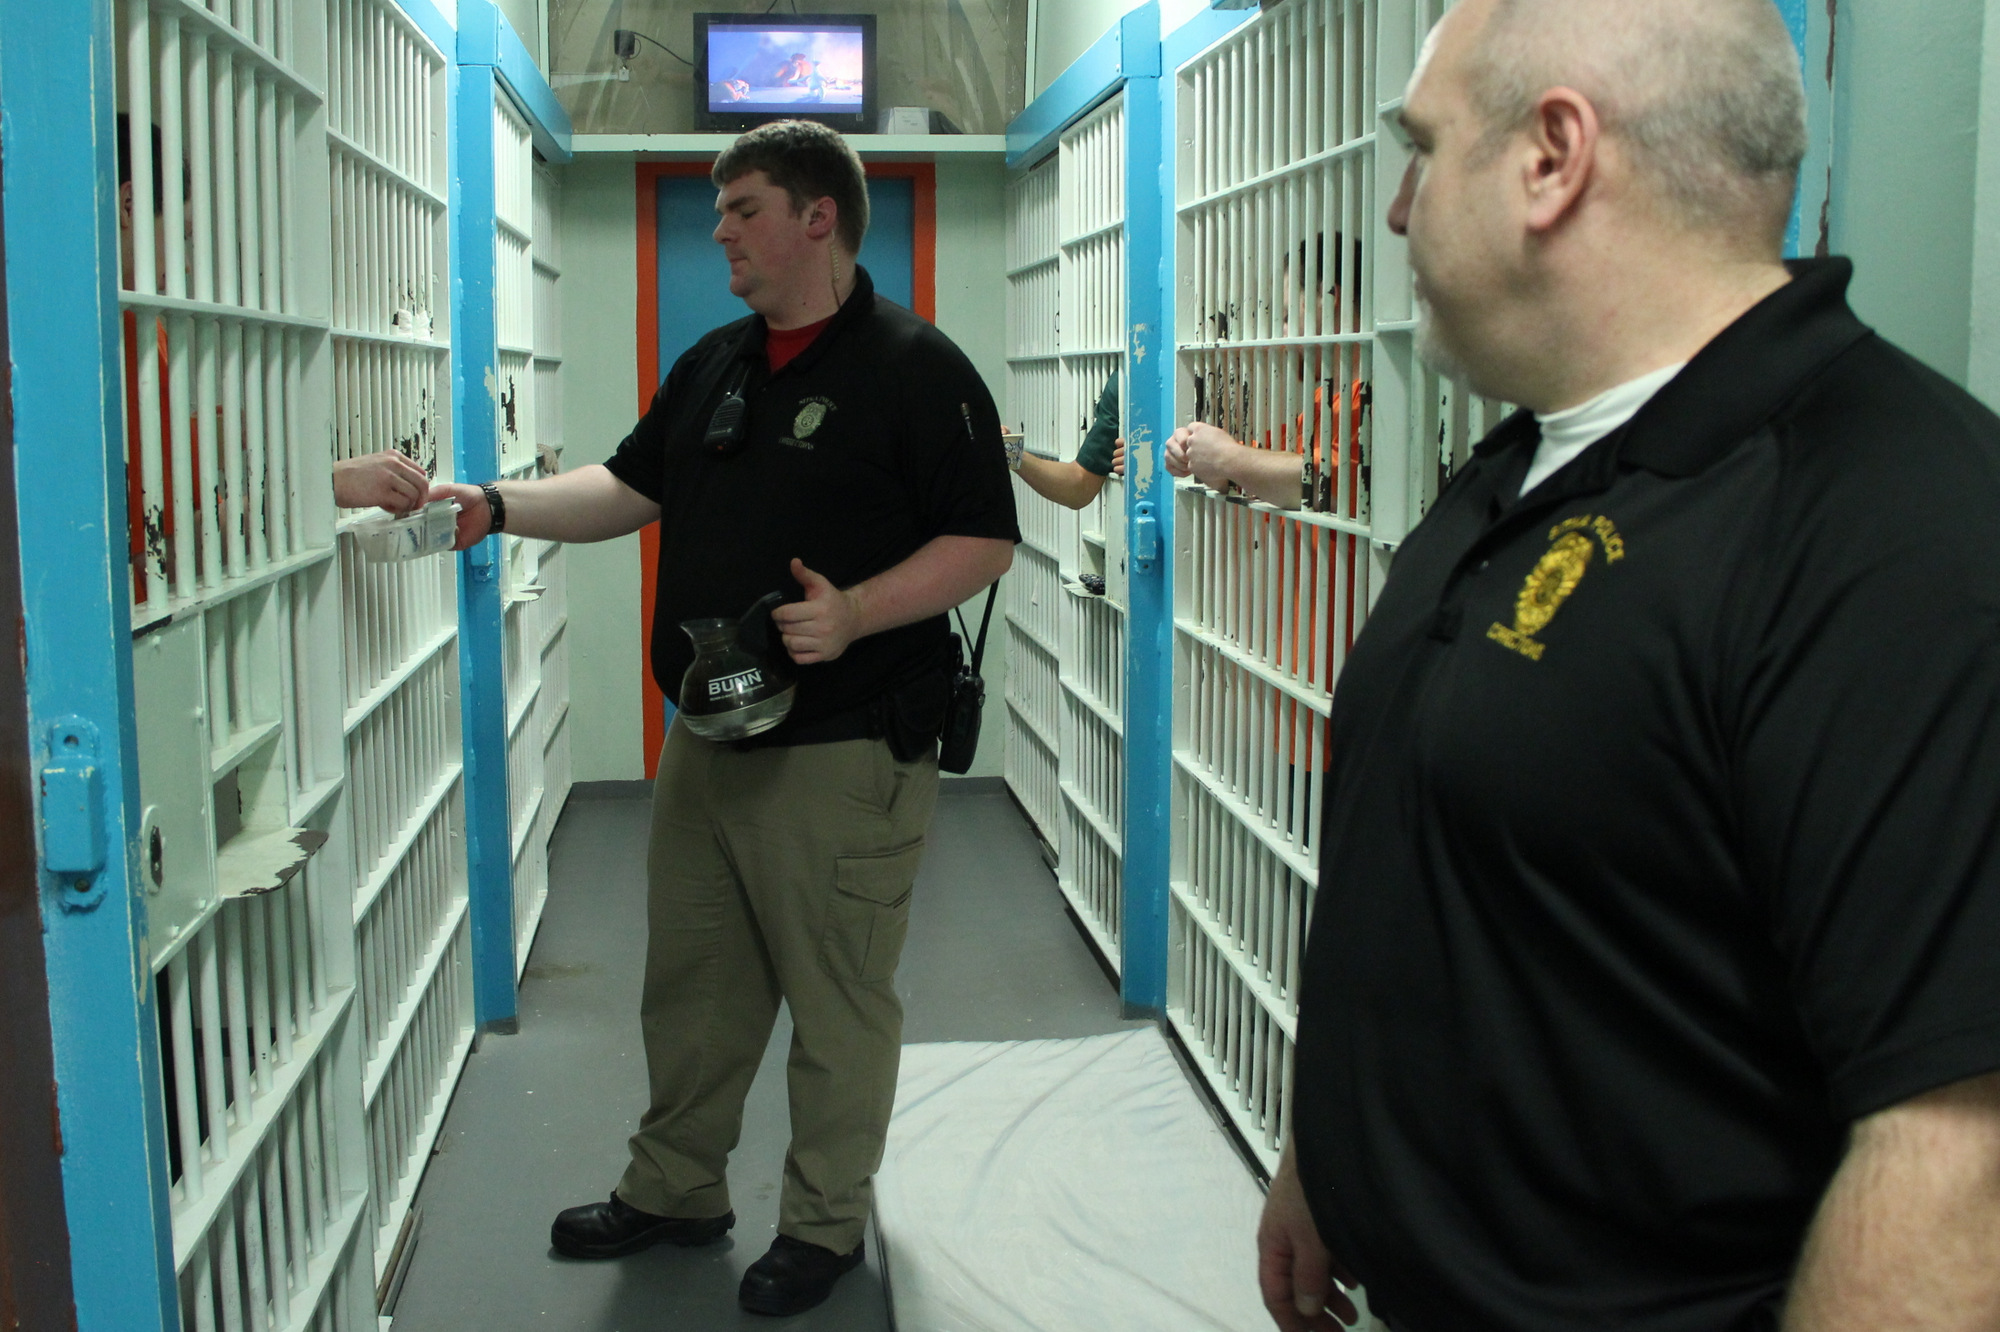 Sitka Police Officer Noah Shepard serves coffee to inmates in Sitka's jail, while supervisor Dave Nelson looks on. (KCAW photo/Rachel Waldholz)